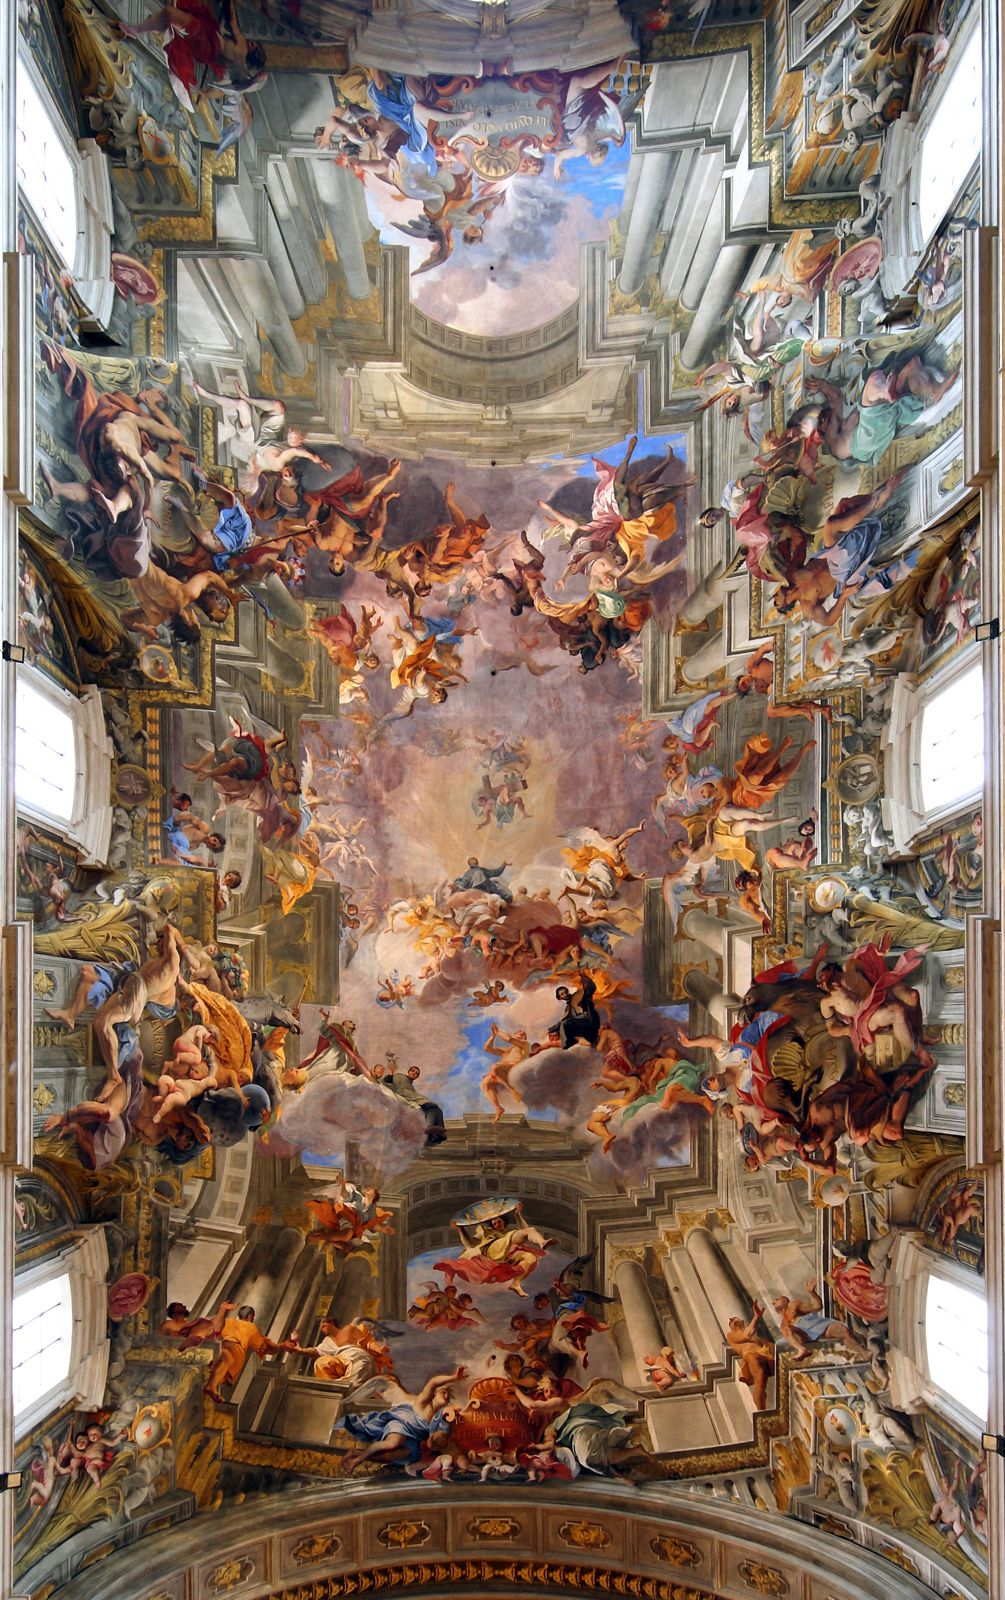 Trompe l'oeil ceiling fresco by Andrea Pozzo, 1694. The ceiling is completely flat. From the Church of Sant'Ignazio, Rome, by Orazio Grassi, 1626. Photo: Bruce McAdam/wikimedia